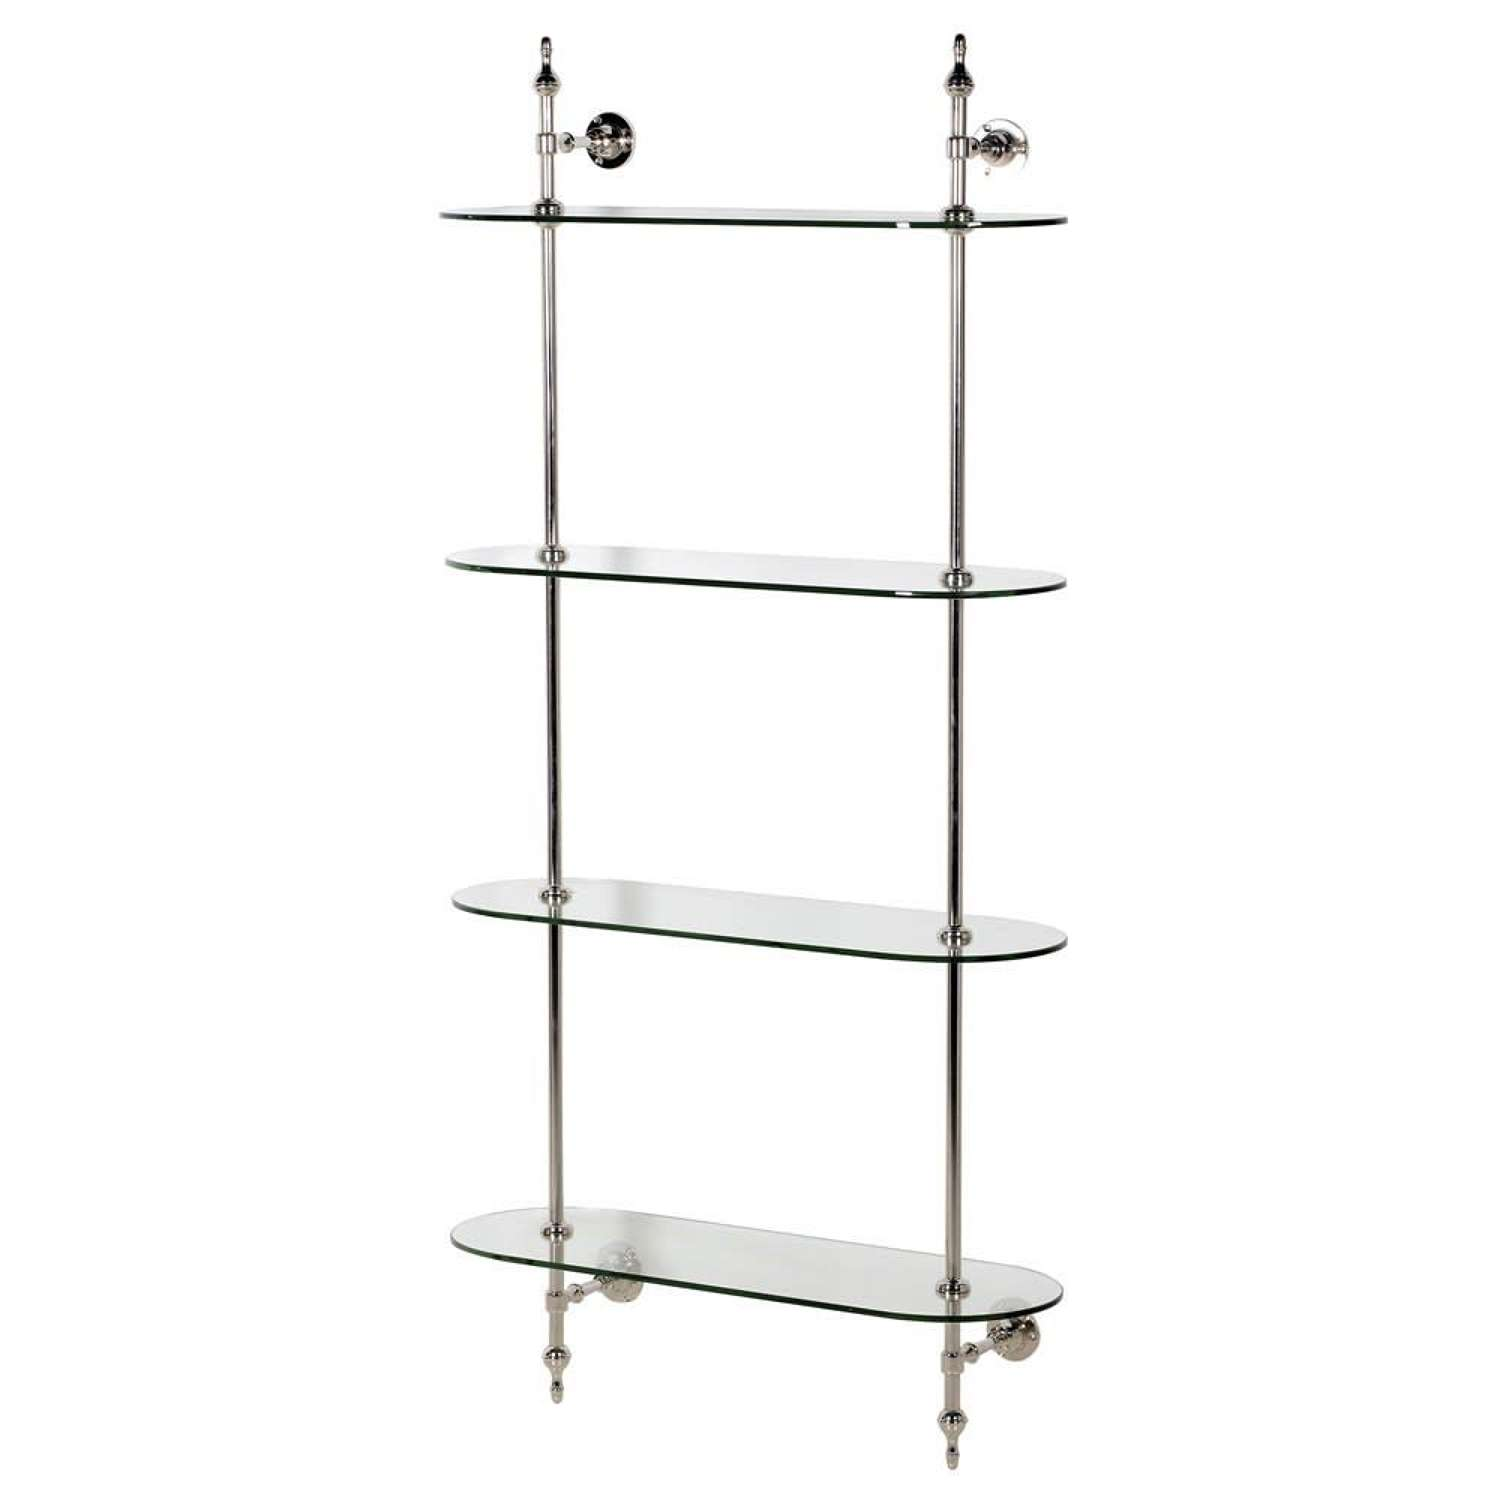 Stainless Steel and Glass Wall Mounted Shelf Unit